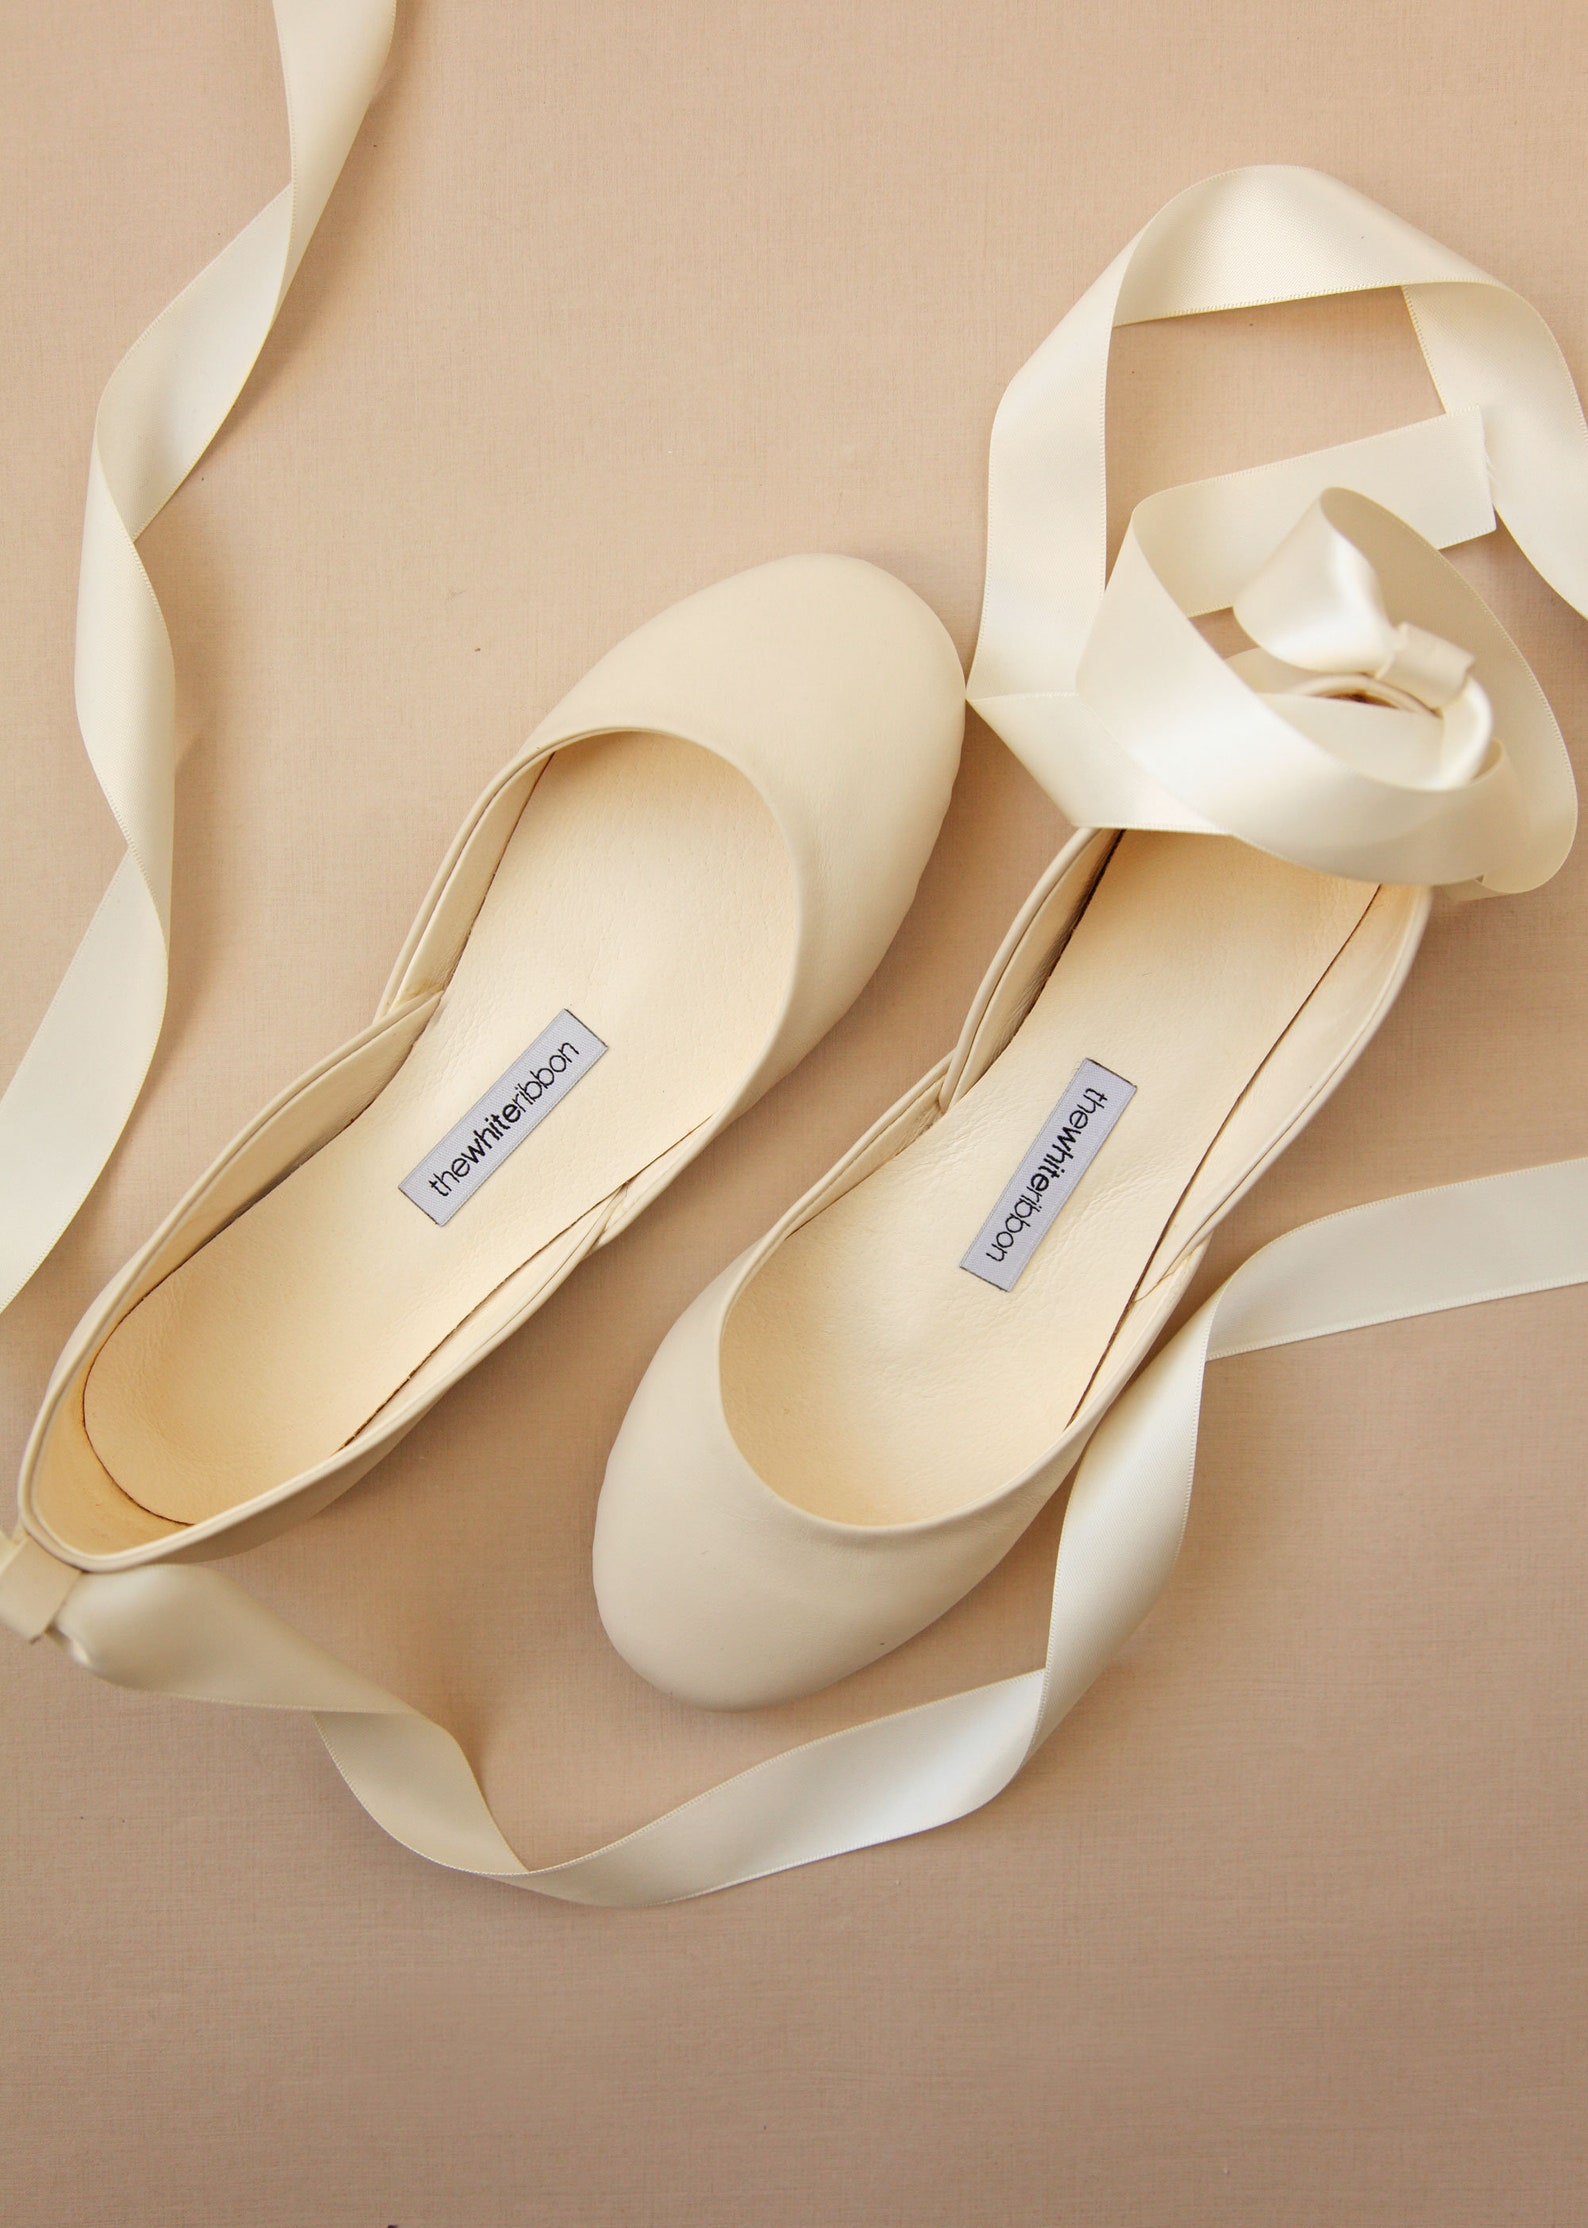 the bridal ballet flats | wedding shoes with satin ribbons | ivory leather bridal flats | vanilla ivory | ready to ship